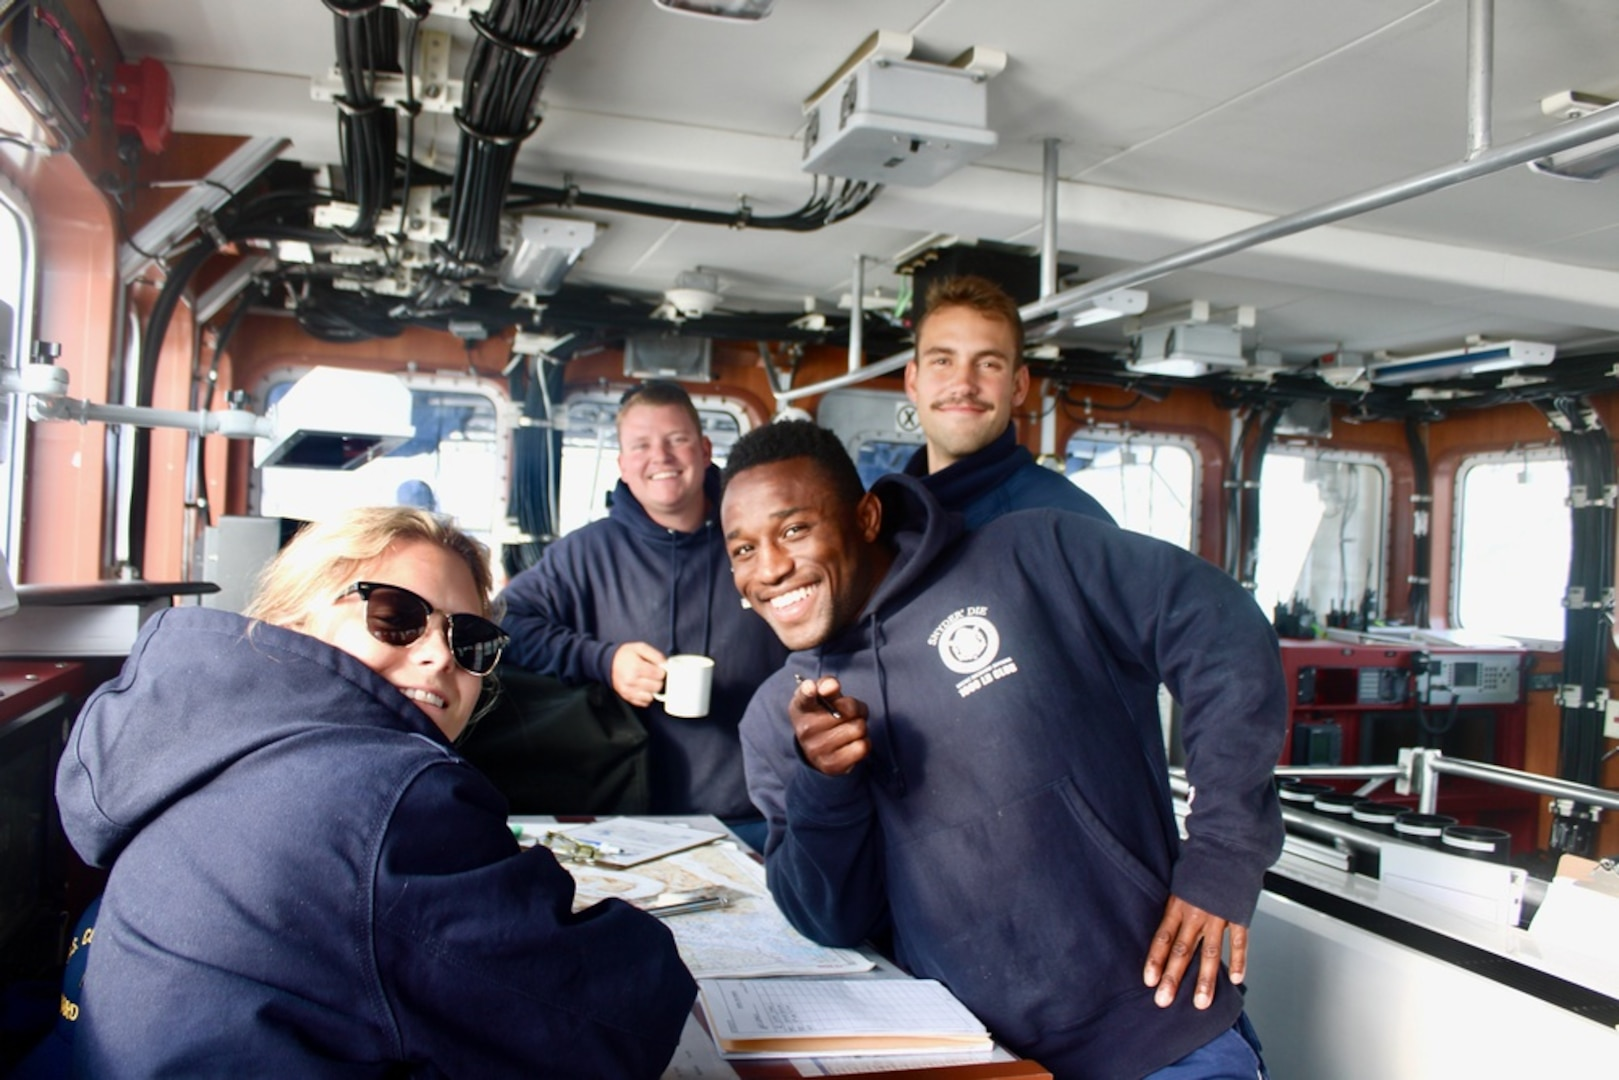 The bridge crew takes a moment for a photo on the Coast Guard Cutter Richard Snyder  in the Davis Strait on Aug. 9, 2021. Snyder worked alongside the Coast Guard Cutter Escanaba, the Royal Canadian Navy's HMCS Harry Dewolf , and HMCS Goose Bay  in Operation Nanook to enhance collective abilities to respond to safety and security issues in the High North through air and maritime presence activities, maritime domain defense, and security exercises. Left to right: Petty Officers 2nd Class Gayle Buchanan, and Zachary Weber, Seaman Kenan Carter, Ensign JT Cox. (U.S. Coast Guard photo by Coast Guard Cutter Richard Snyder)